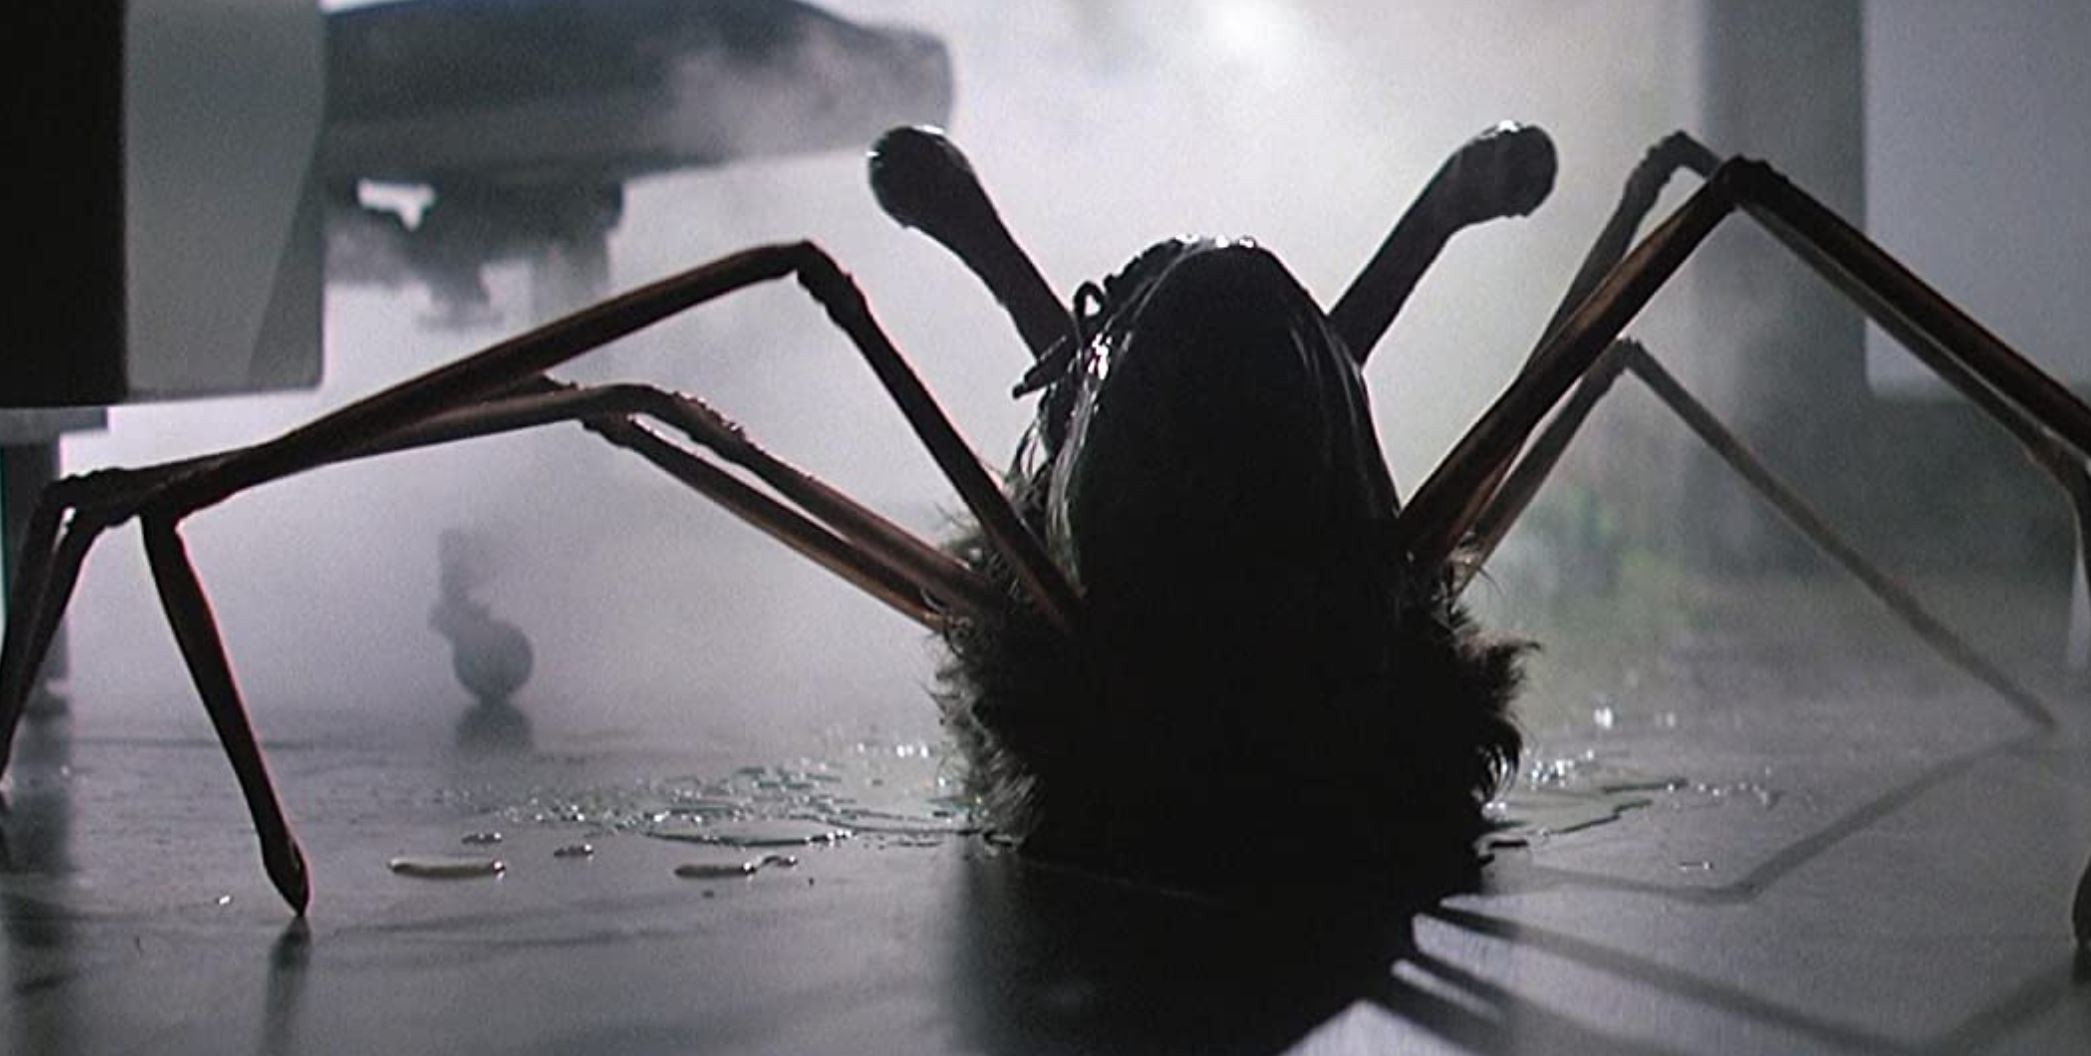 Spider Head from The Thing